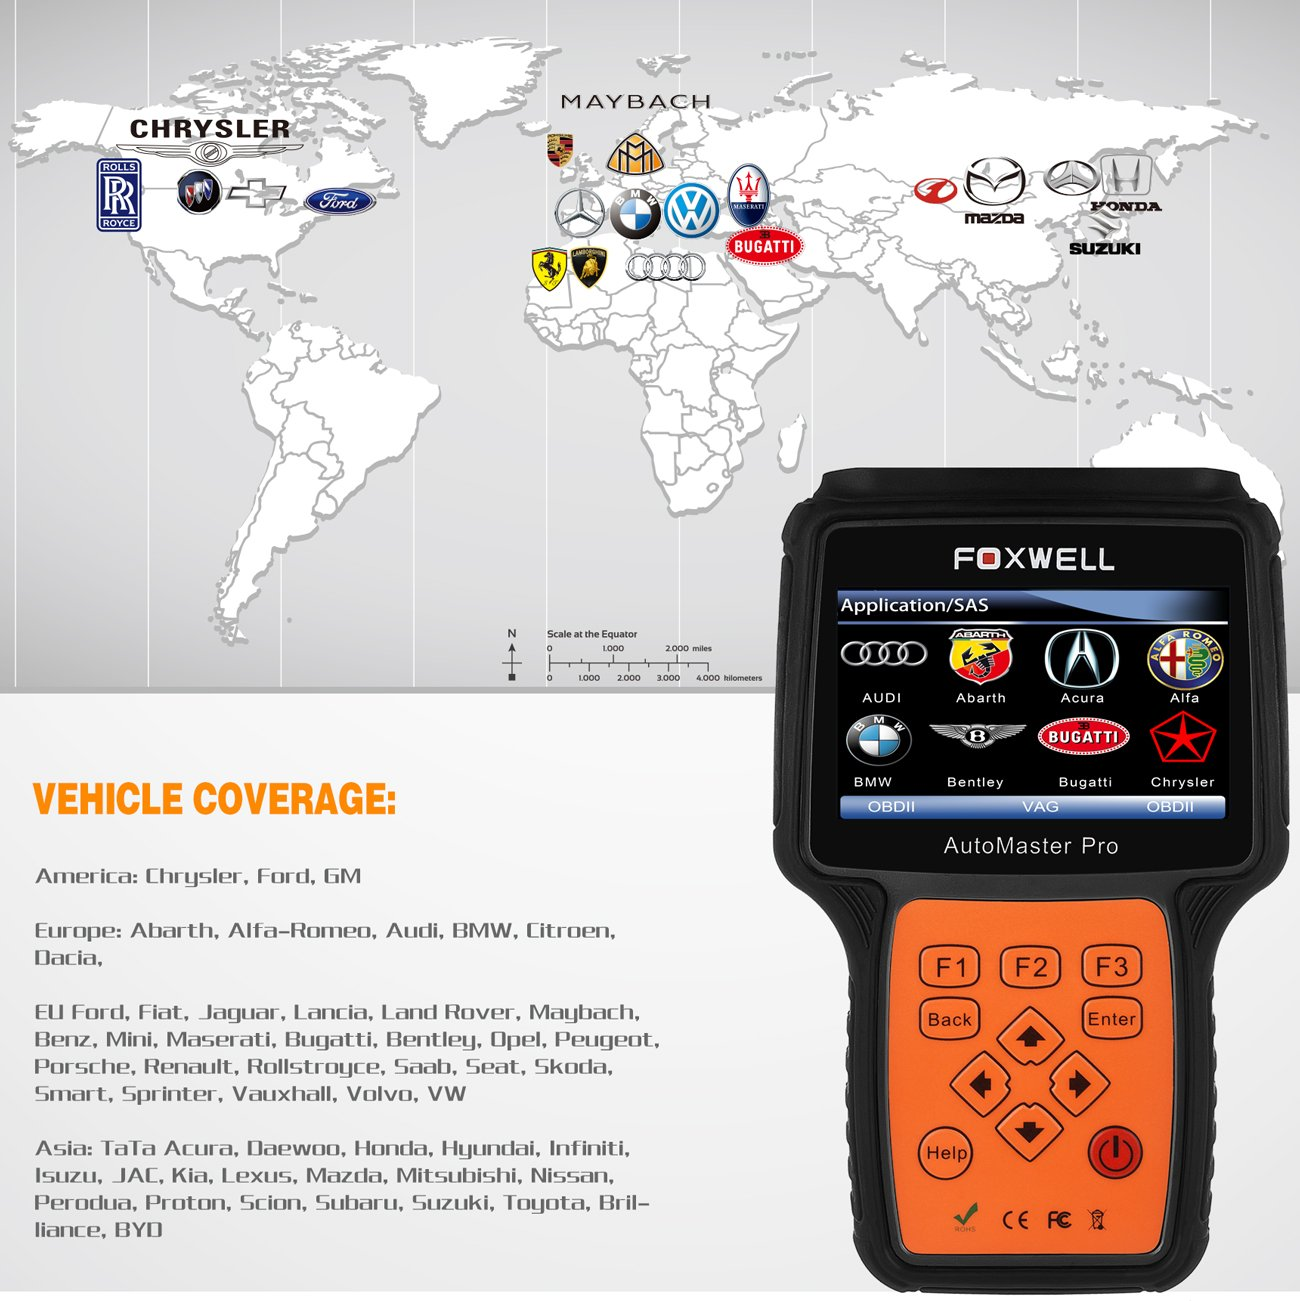 Foxwell Nt614 Automotive Scanner All Brand 4 System Nissan Obd2 To Obd1 Wiring Diagram Free Picture Obdii Code Readers Check Engine Abs Airbag Transmission Epb Oil Reset Car Diagnostic